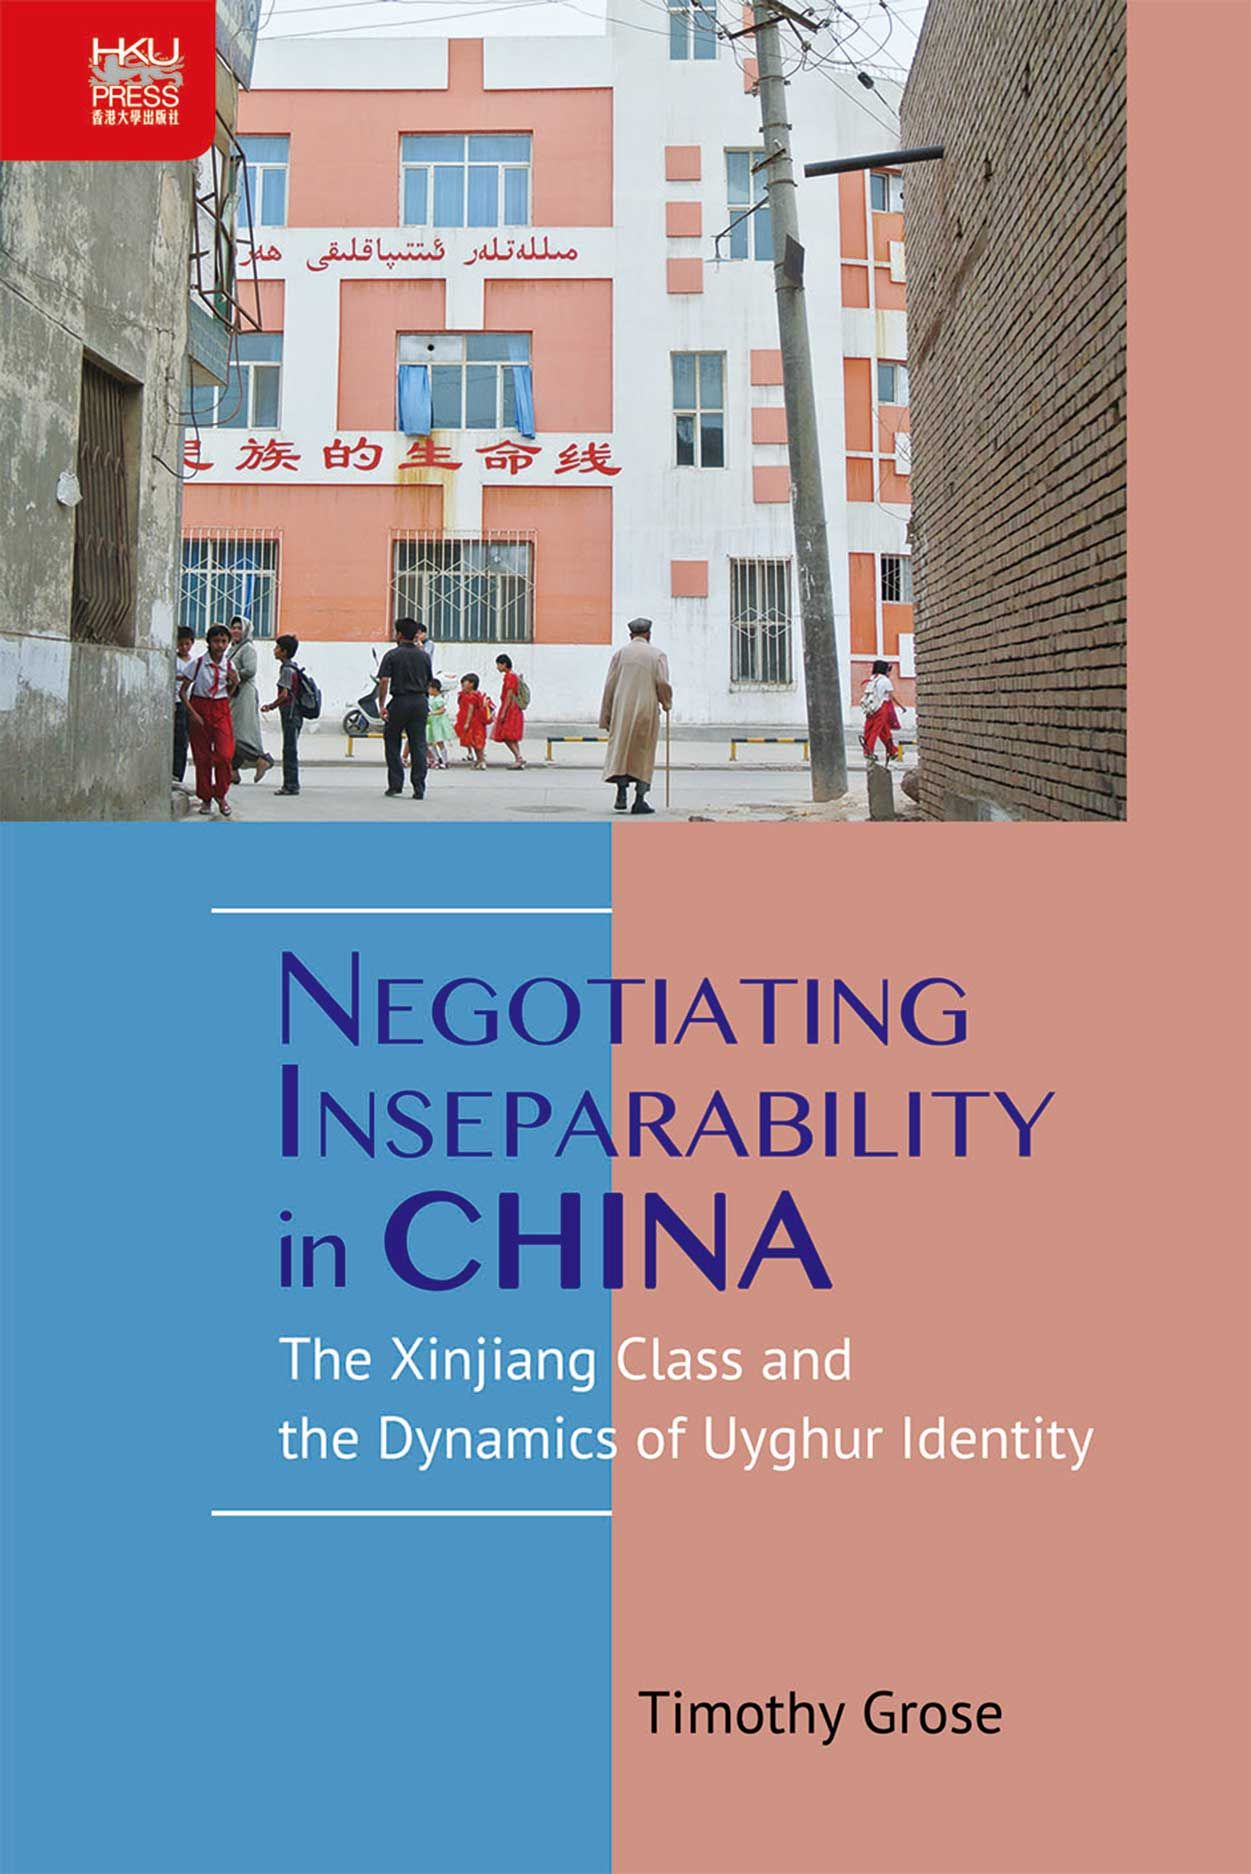 Negotiating Inseparability in China